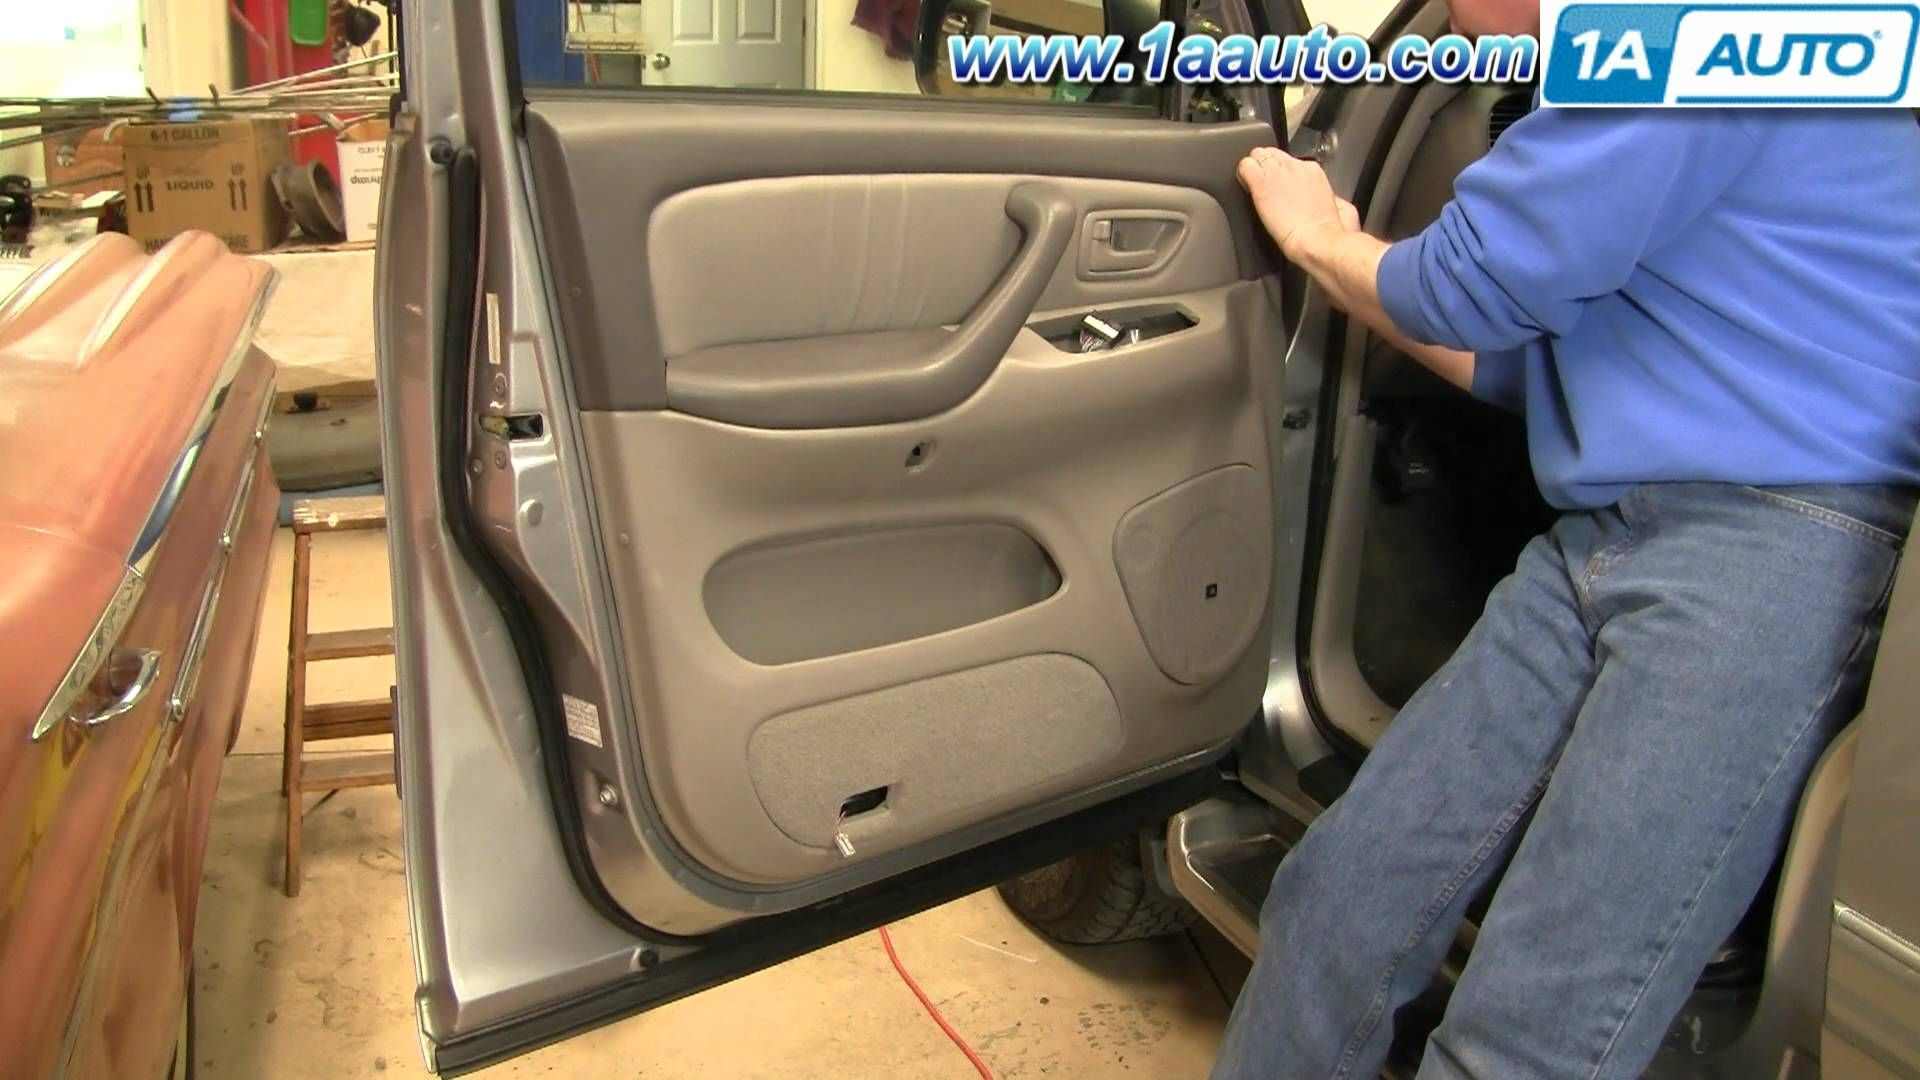 How To Install Replace Remove Door Panel Toyota Sequoia 01 04 1aauto Com 20181009 Barn Doors Not Just For Barns Anymore Panel Doors Toyota Replace Door